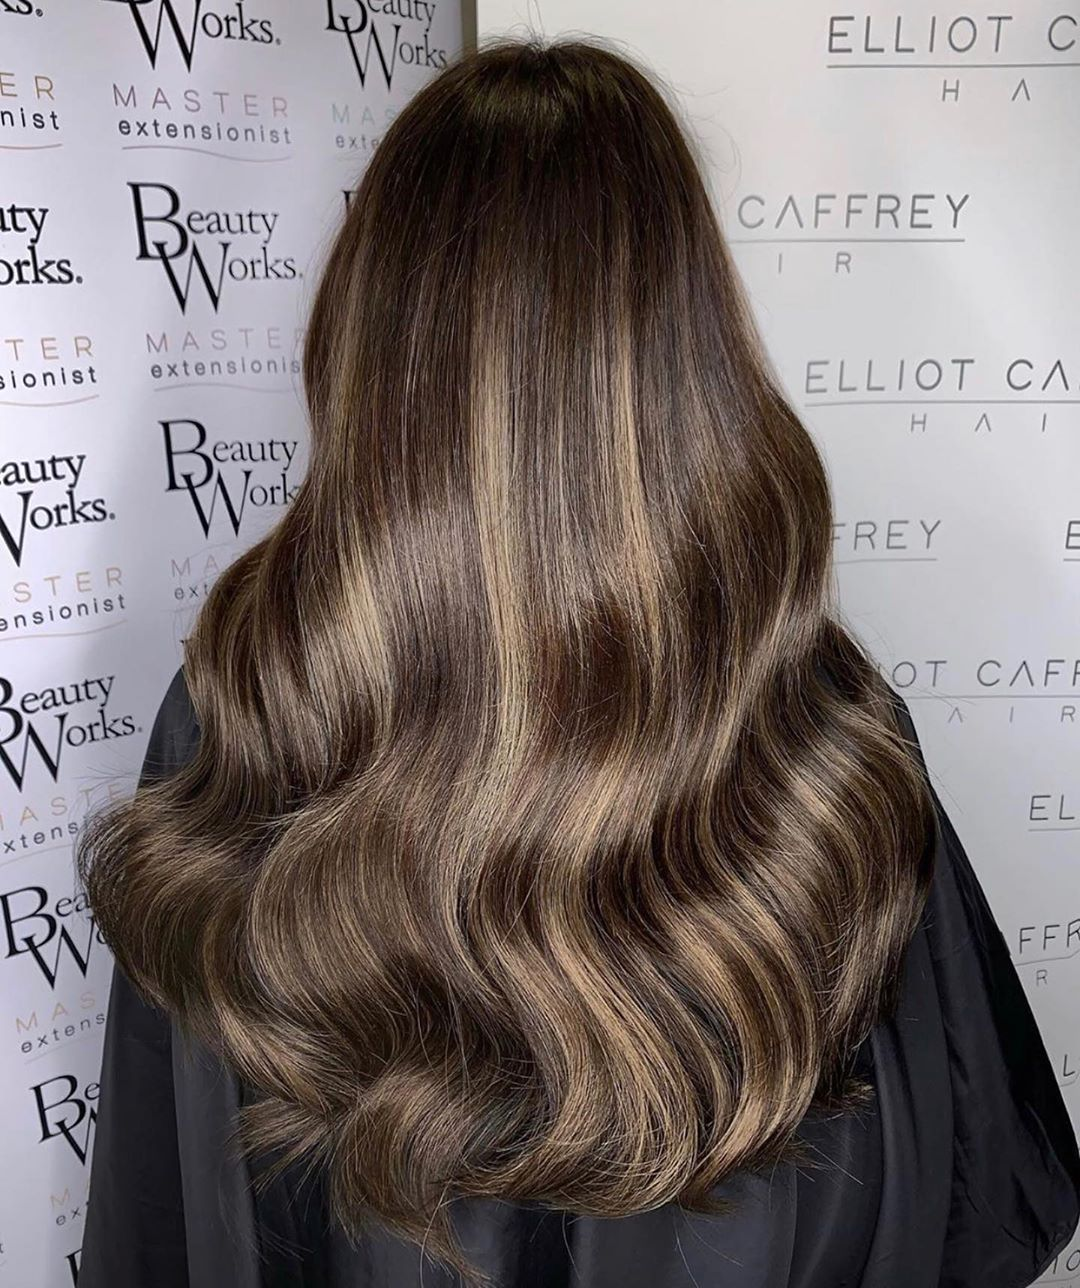 Beauty Works Hair Extensions On Instagram Application Is 18 Slim Line Tape Extensions In A Brunette B Beauty Works Hair Extensions Beauty Works Beauty